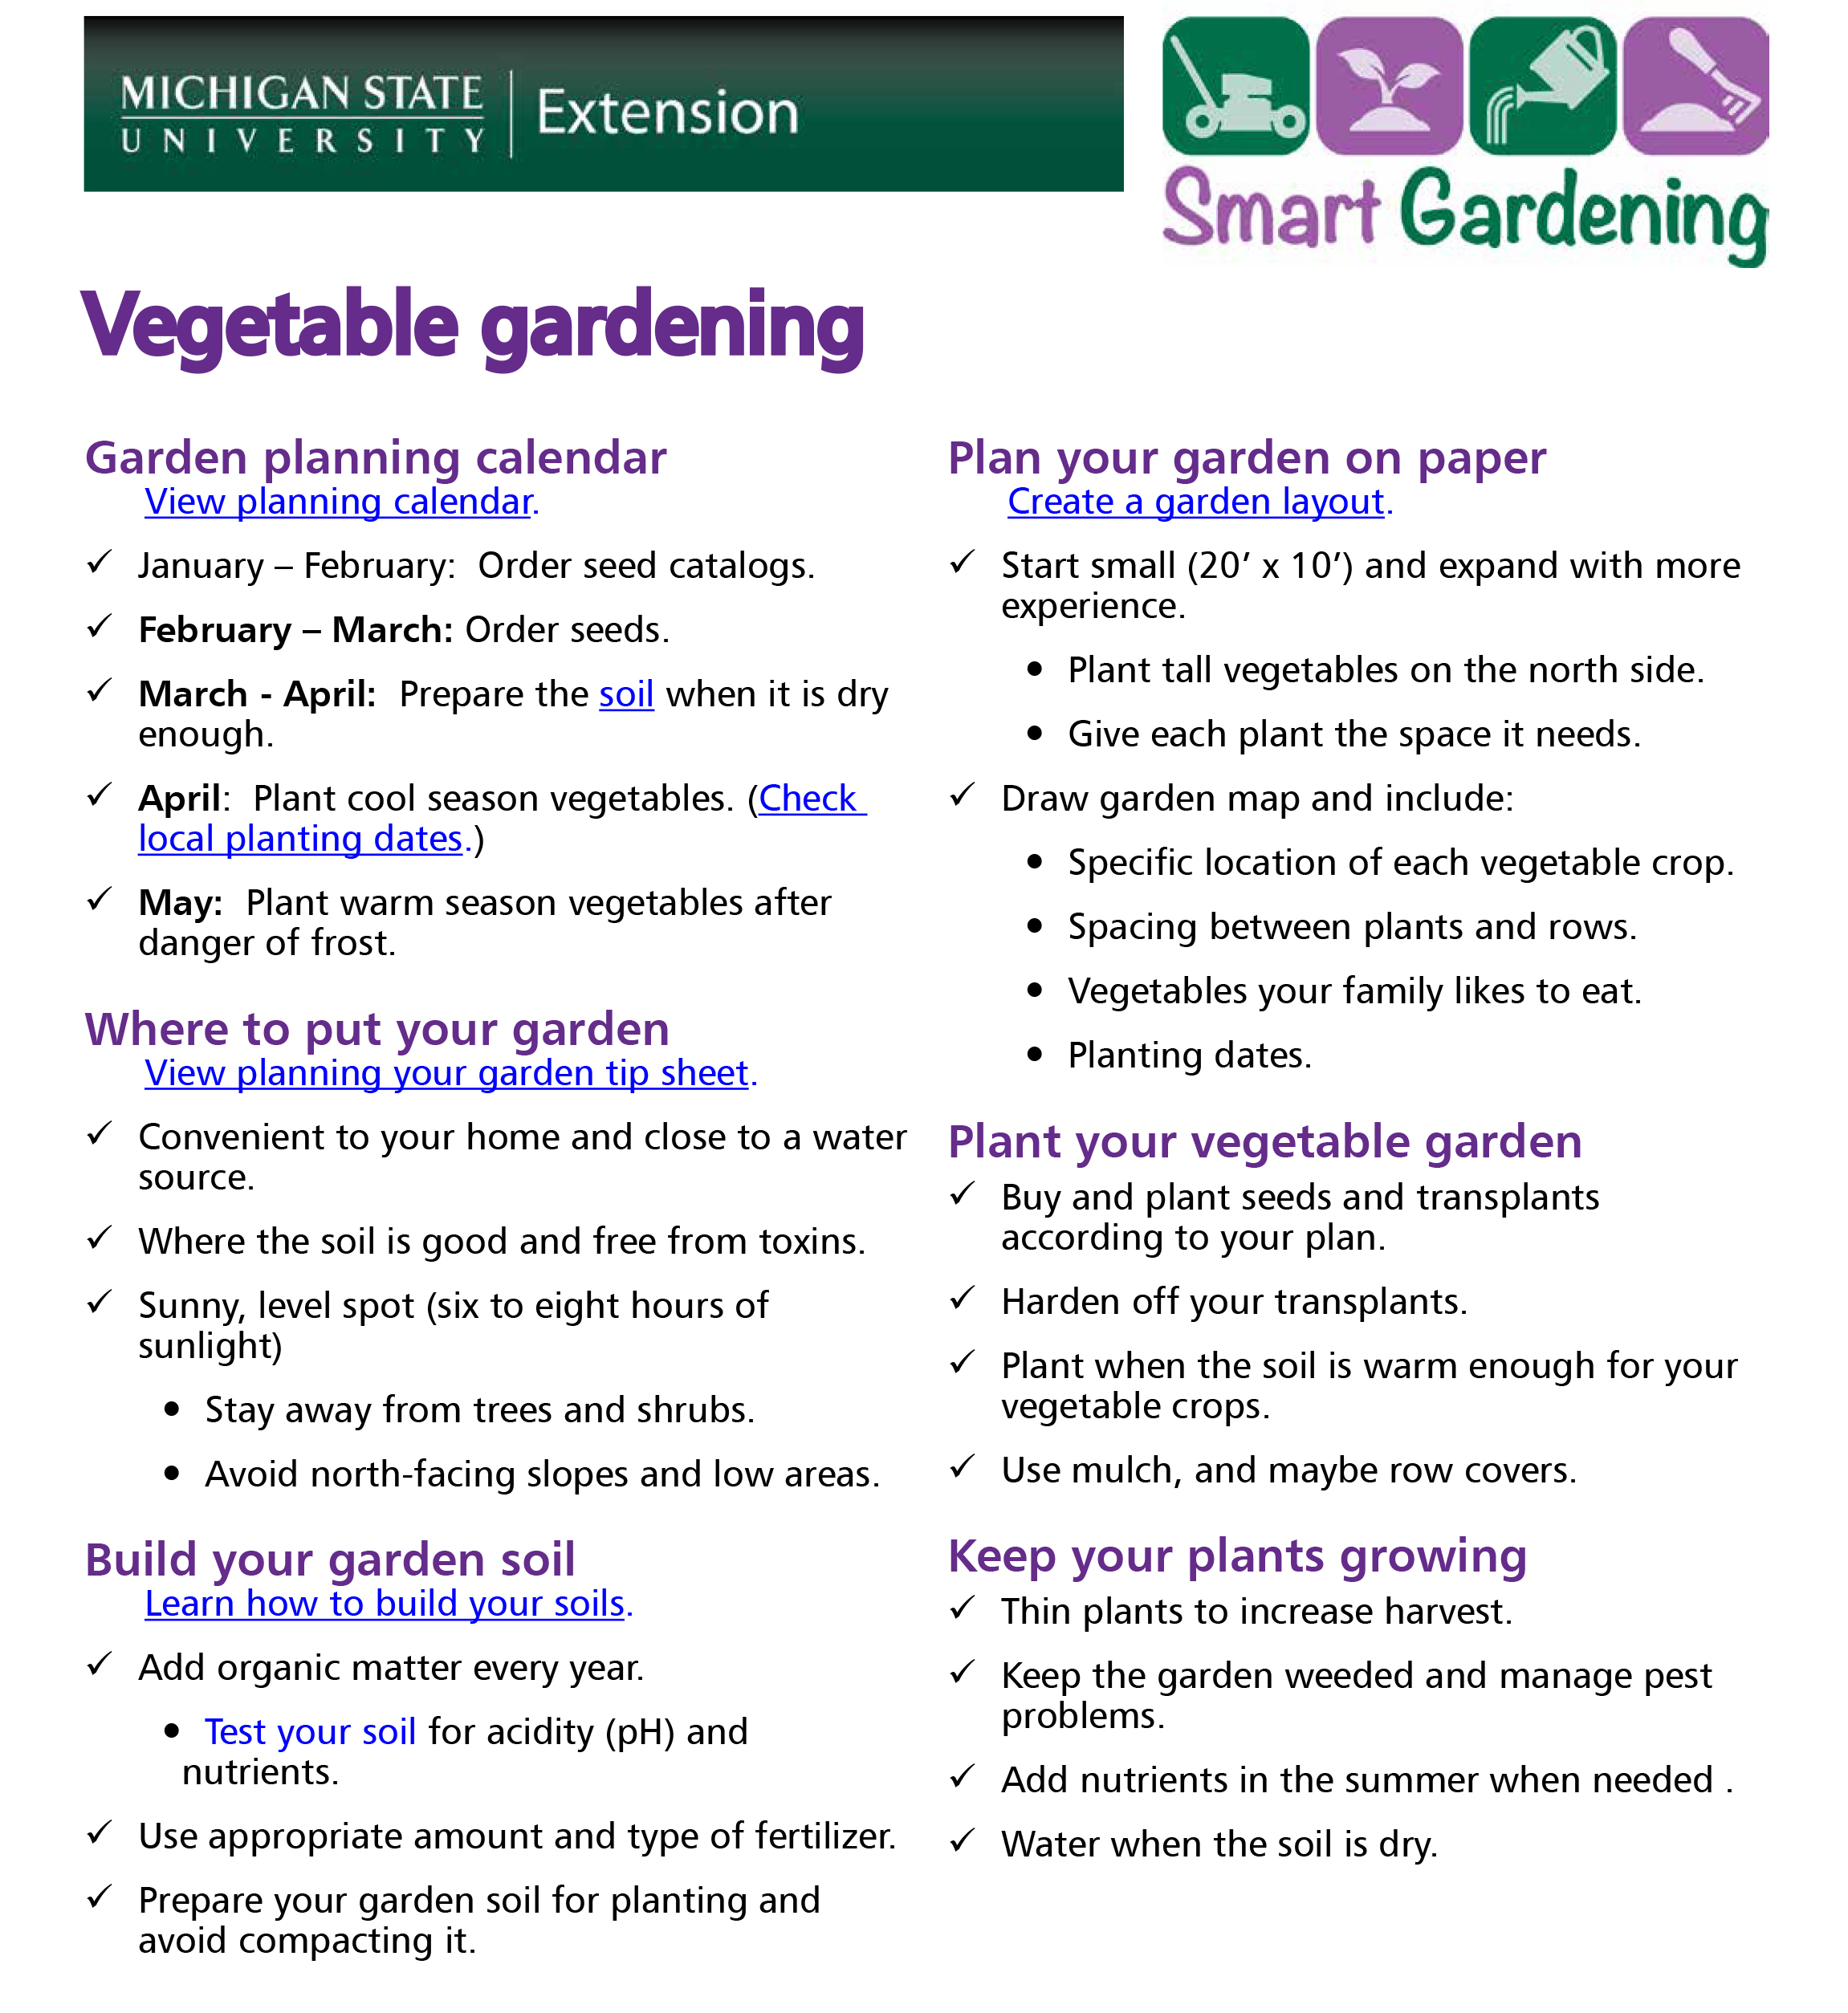 Vegetable gardening tip sheet